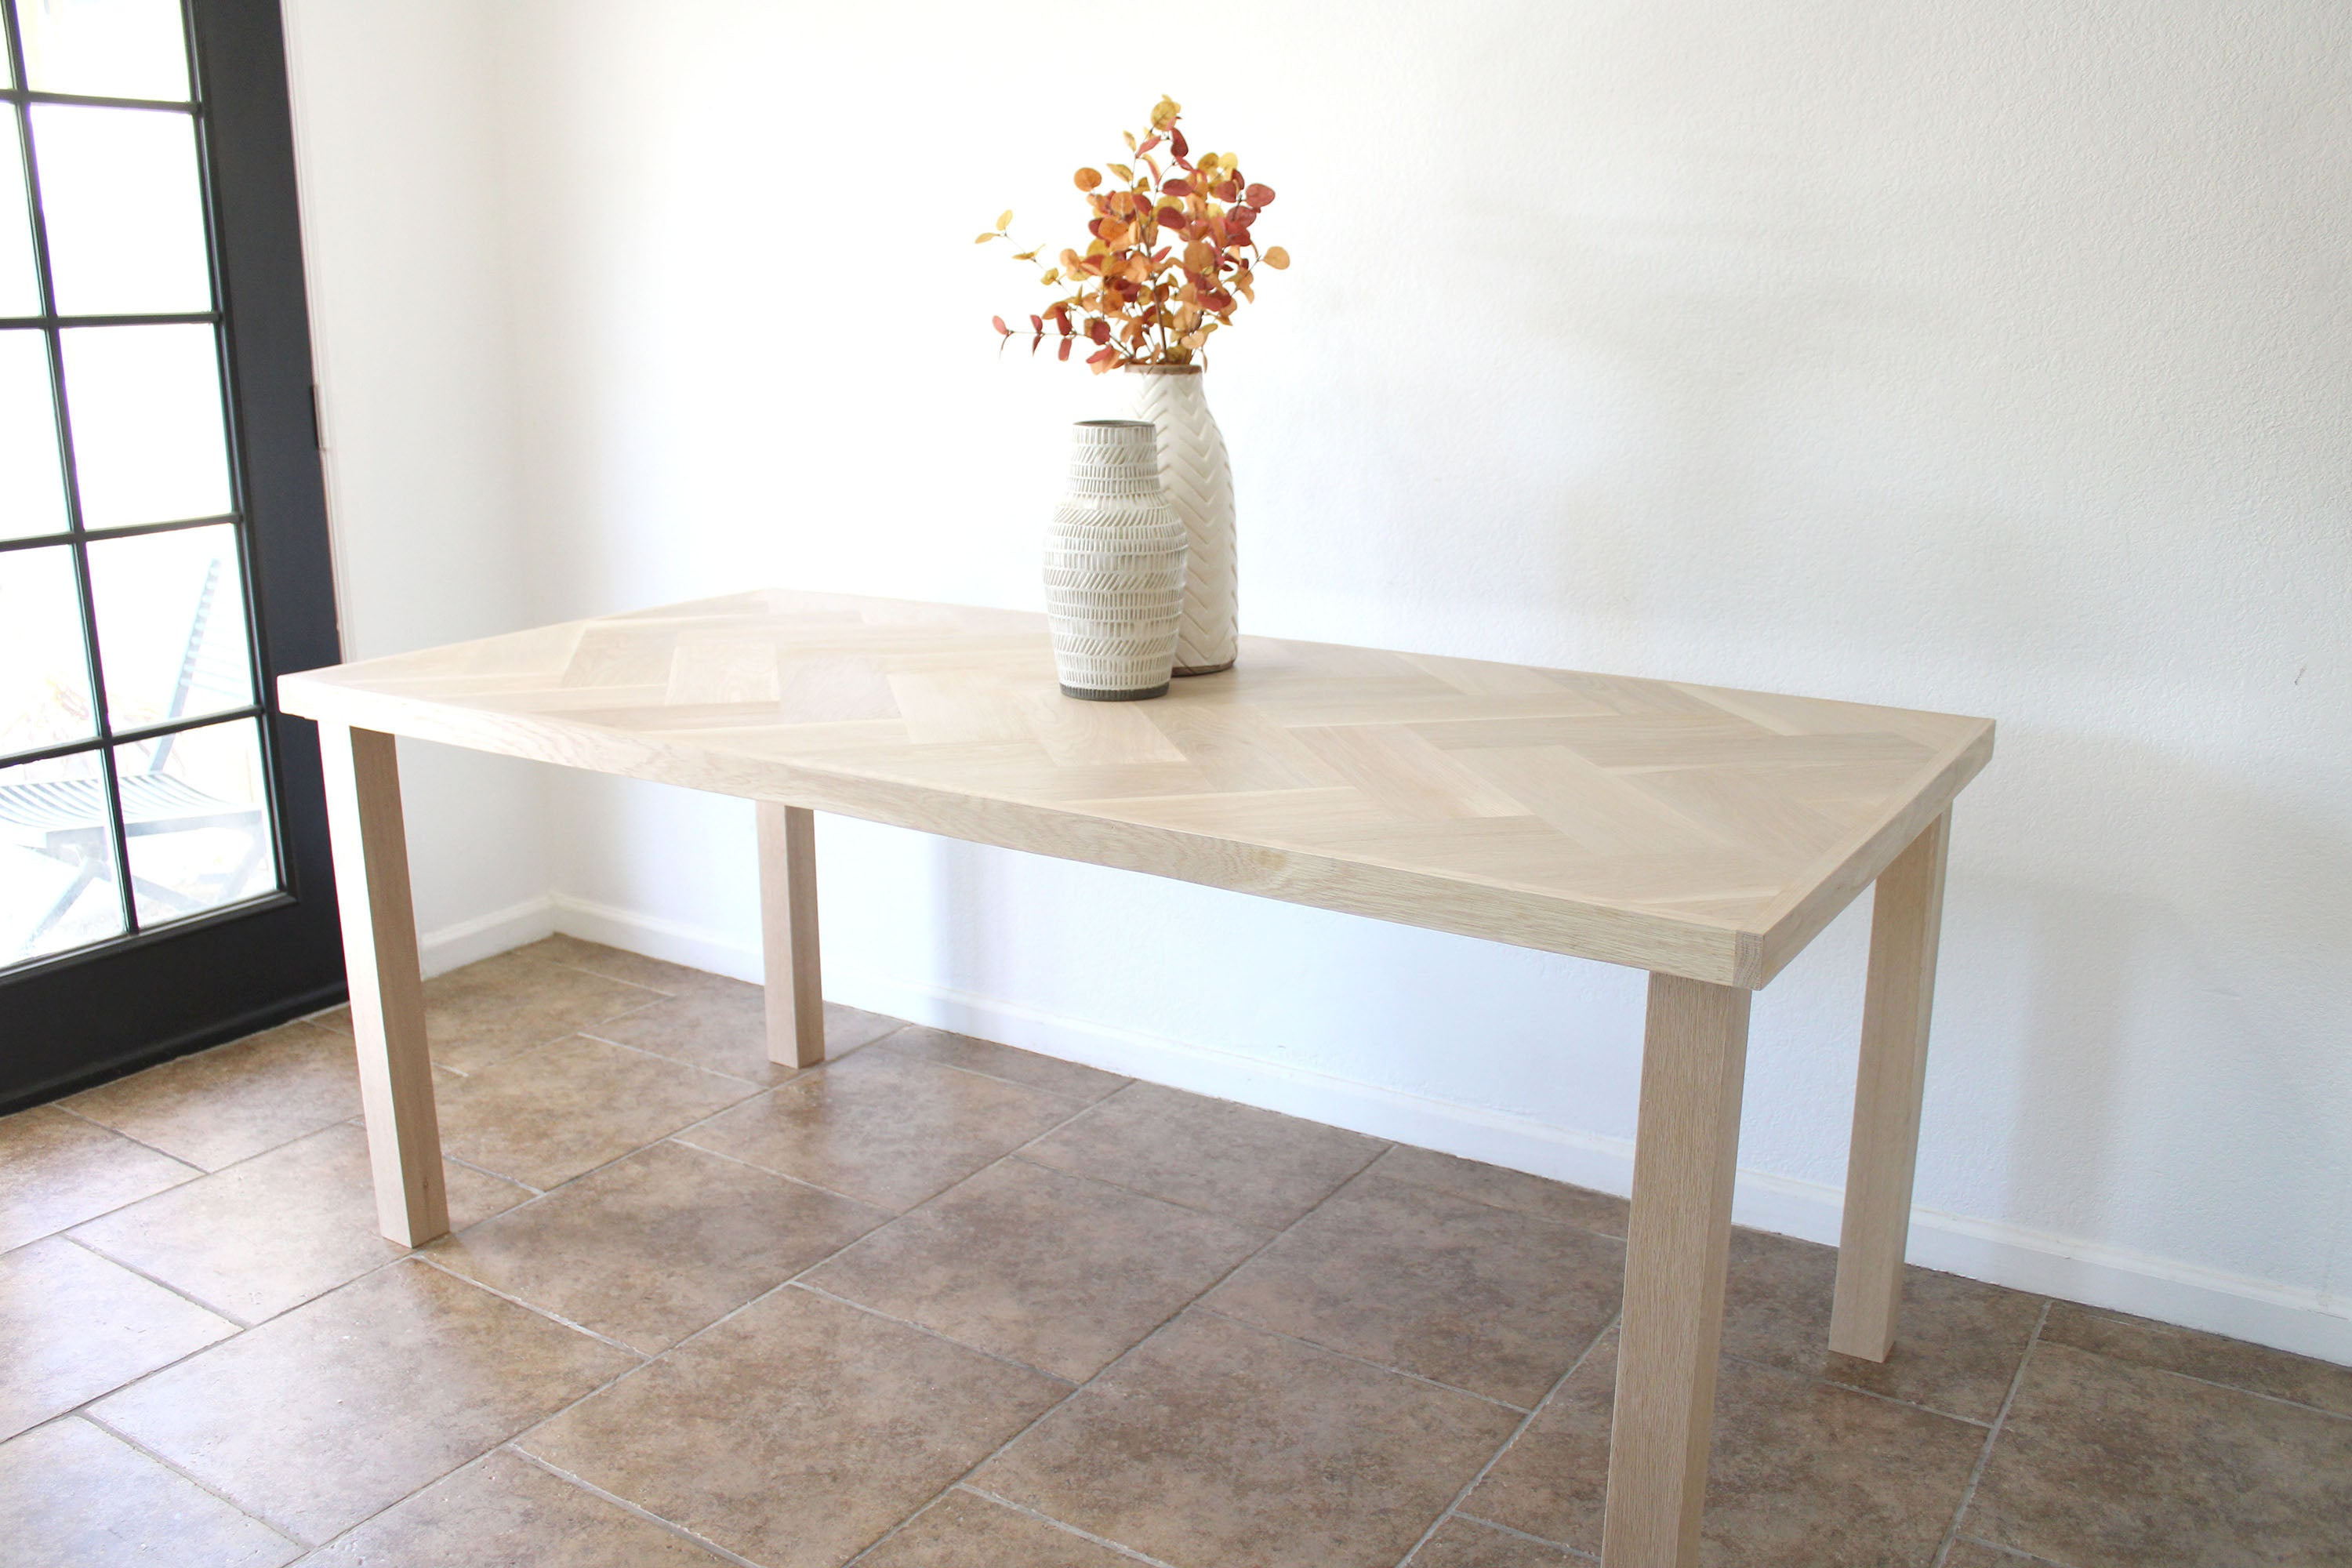 Signature White Oak Wood Herringbone Dining Table- Hairpin or Solid Wood Legs